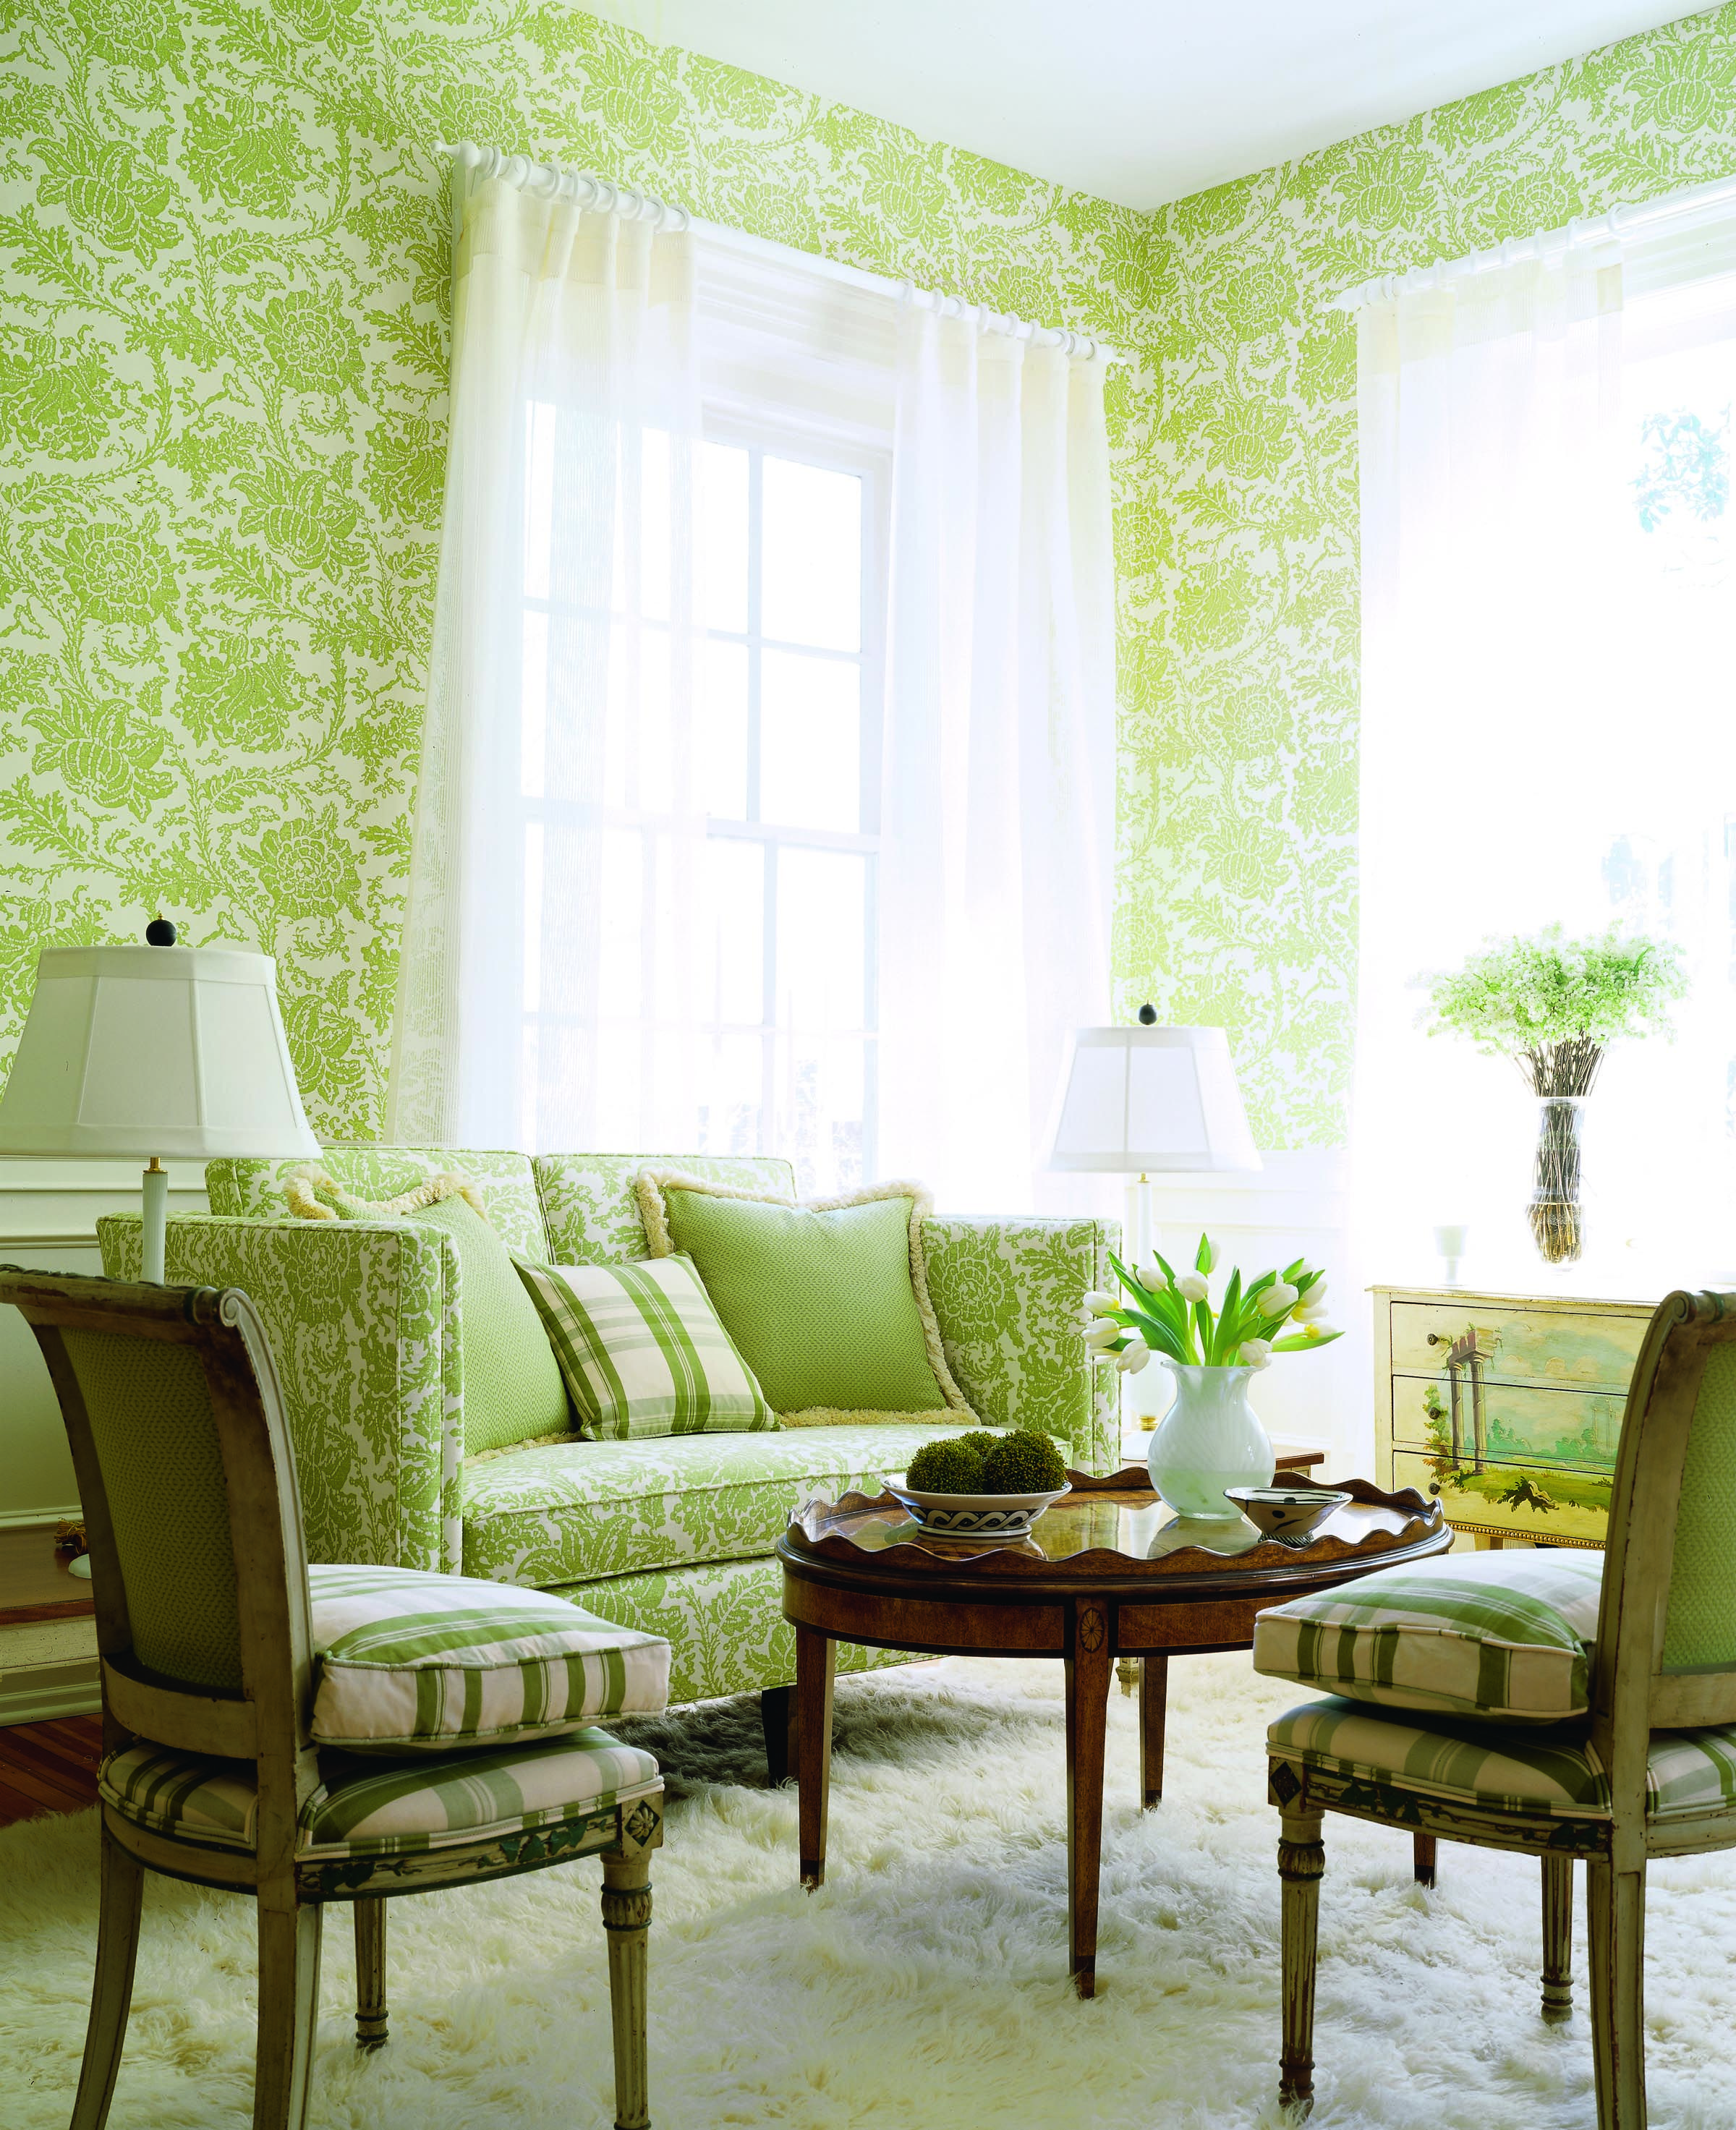 Mizoram wallpaper and fabric from Cypress Thibaut Room